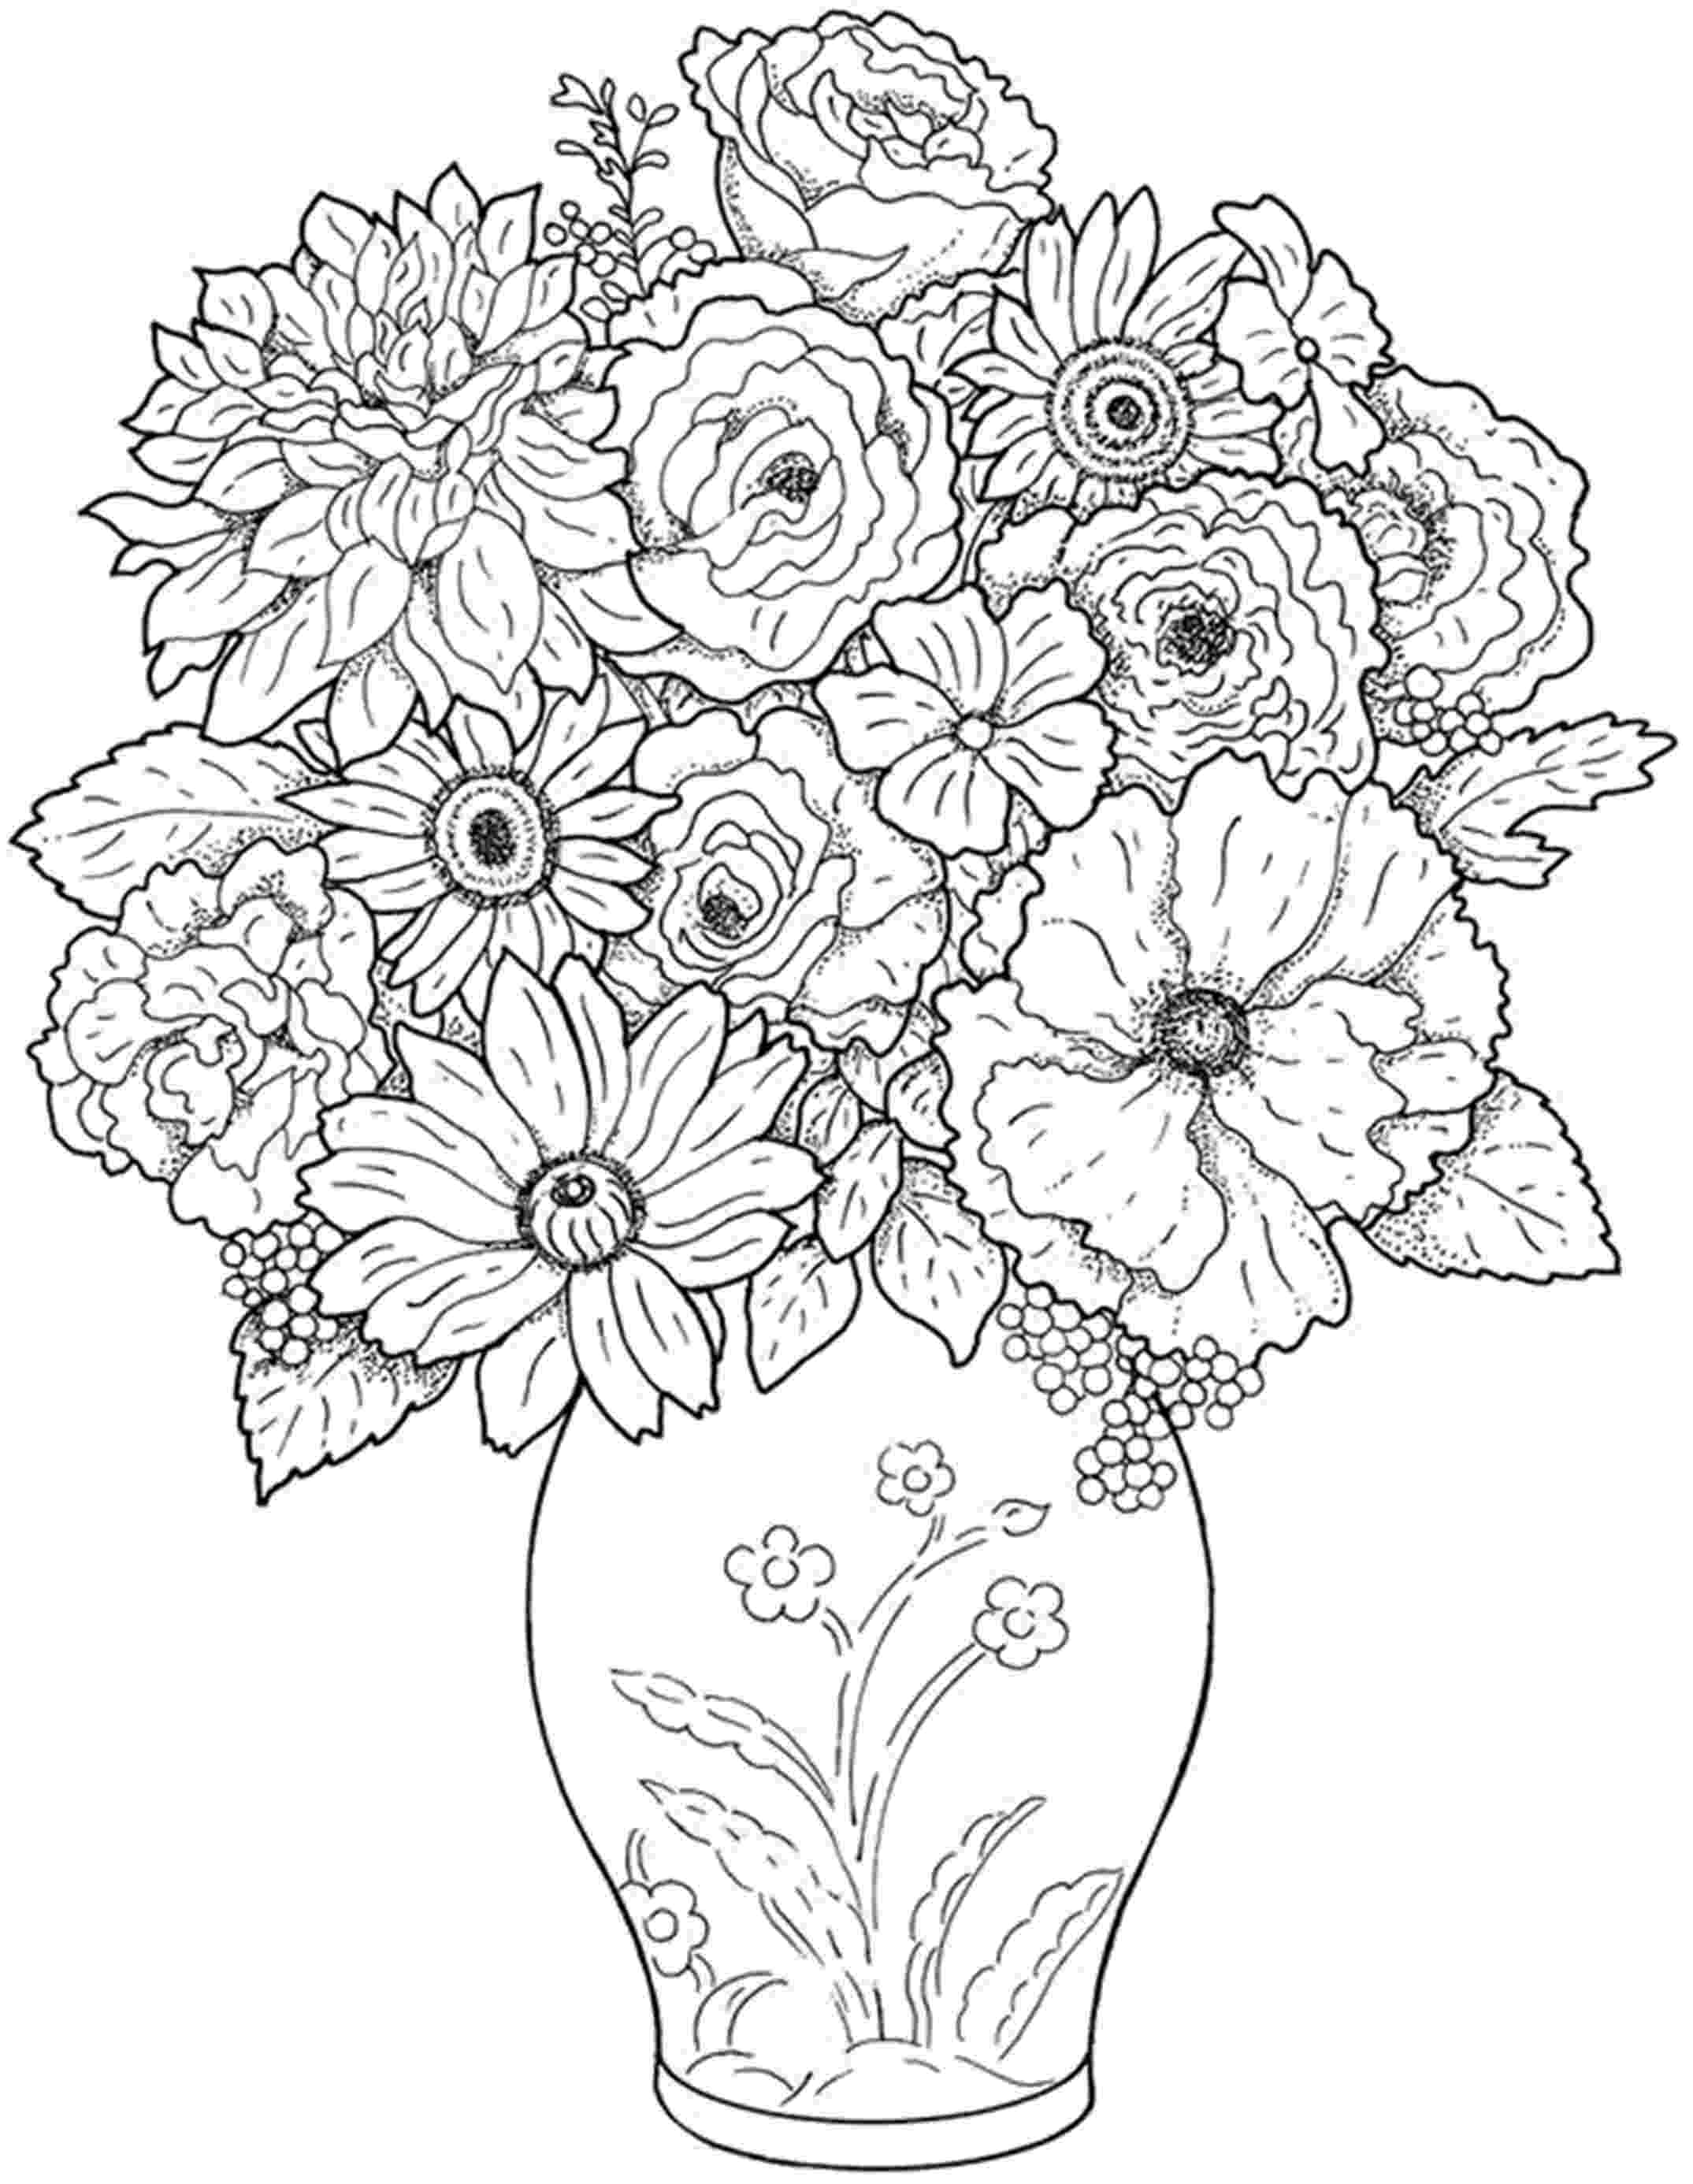 coloring pictures of flowers in a vase flowers in vase with stripes coloring page plants a flowers of pictures coloring in vase